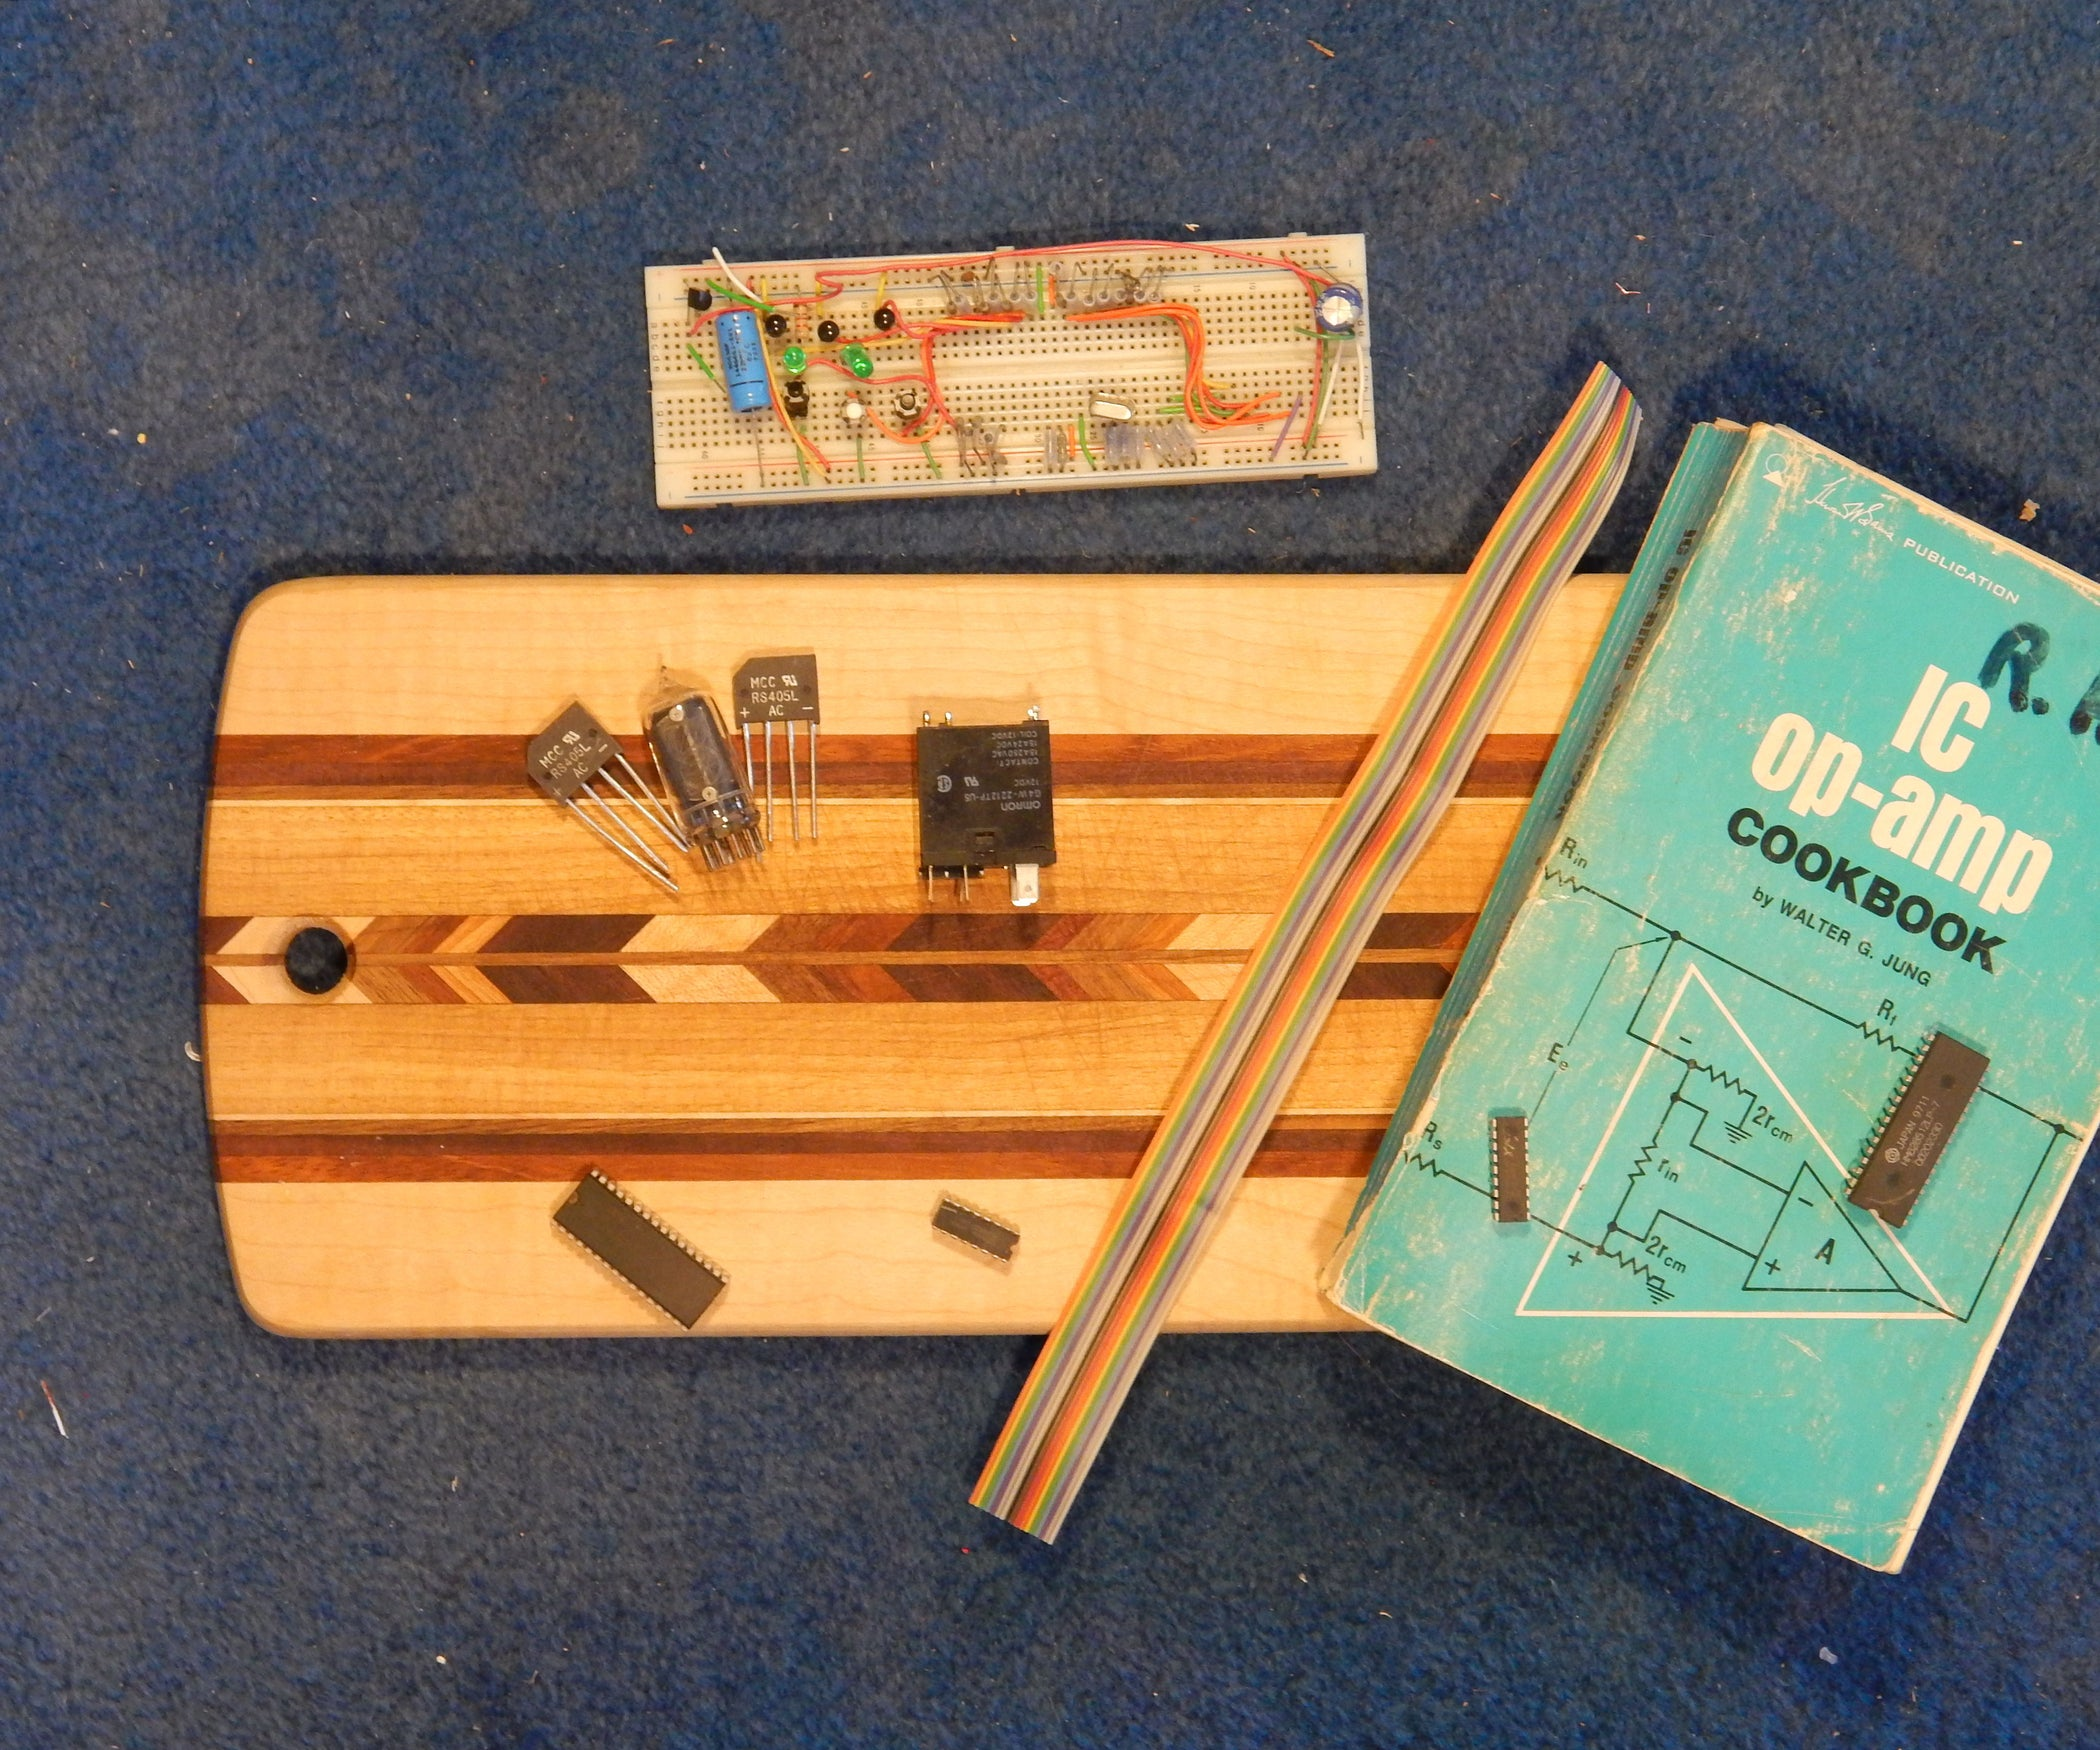 Comprehensive Guide to Electronic Breadboards: a Meta Instructable